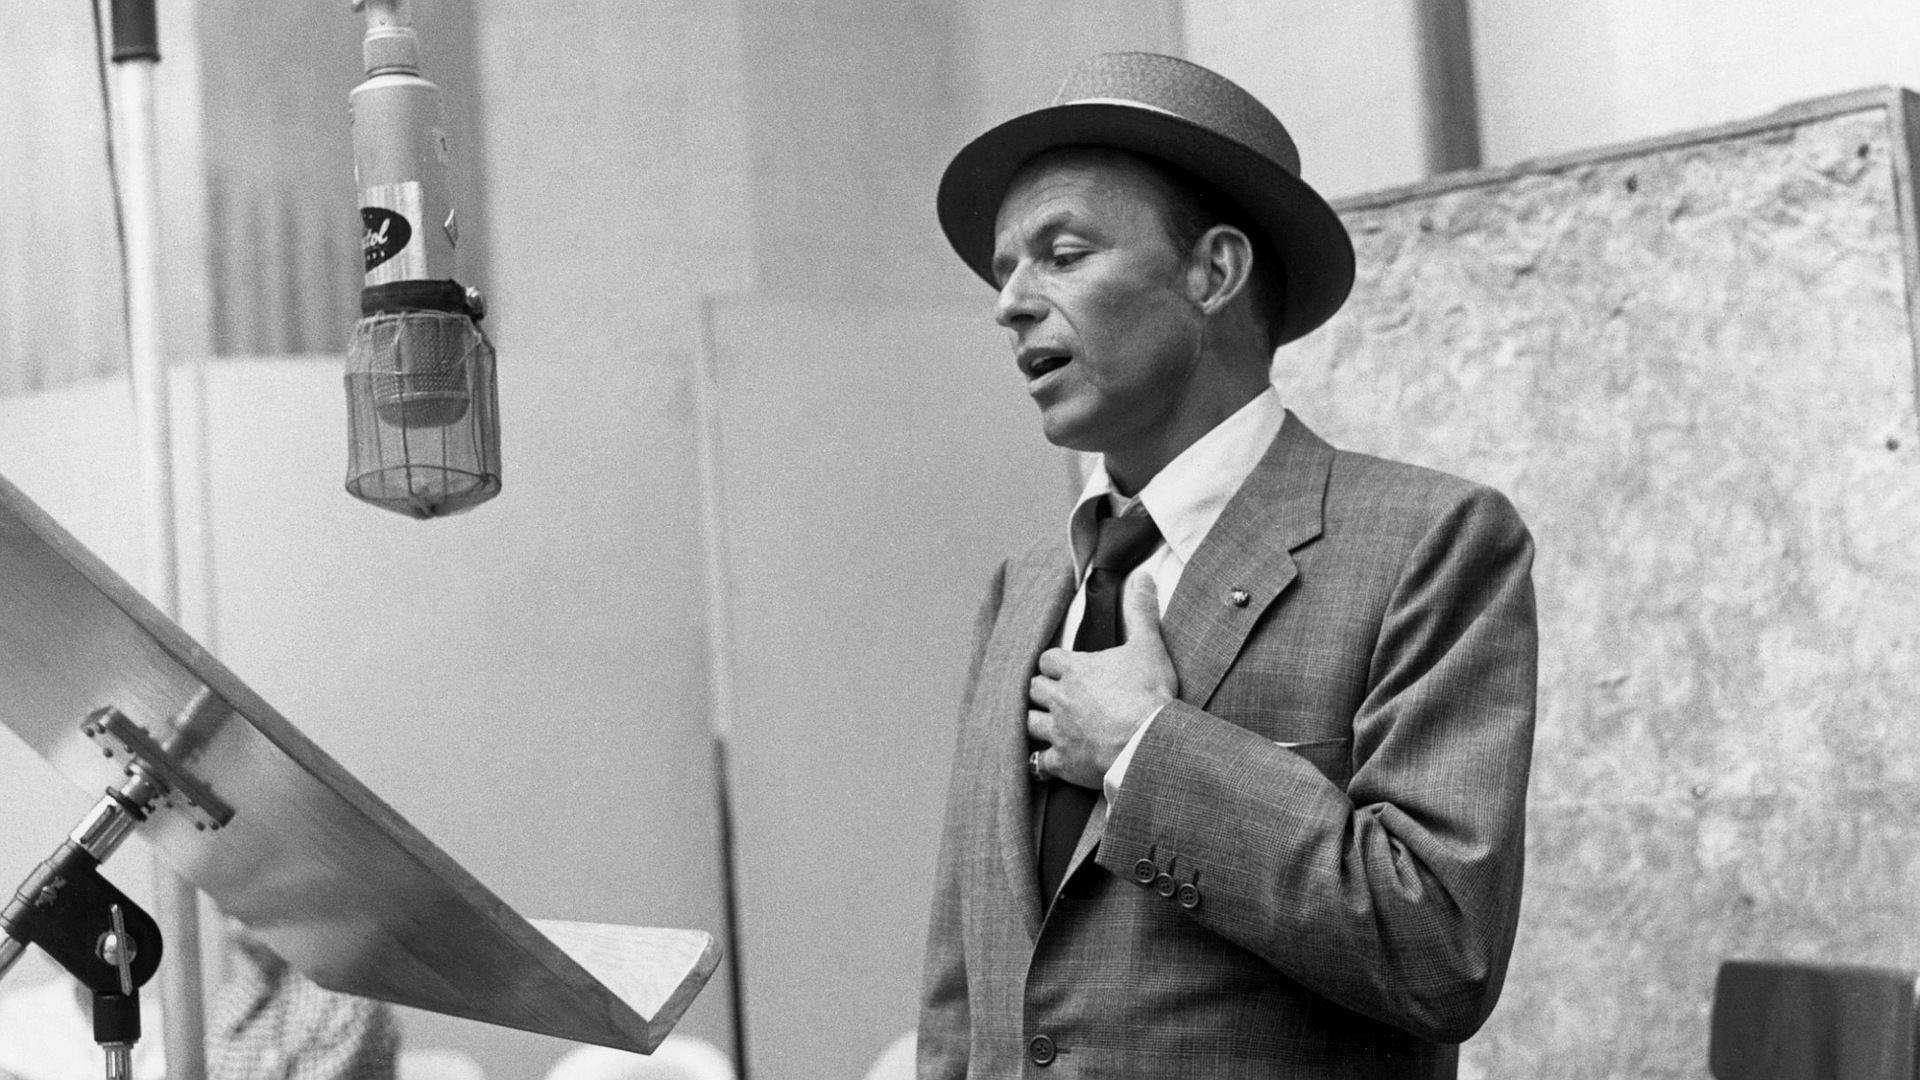 Come Fly With Me av Frank Sinatra